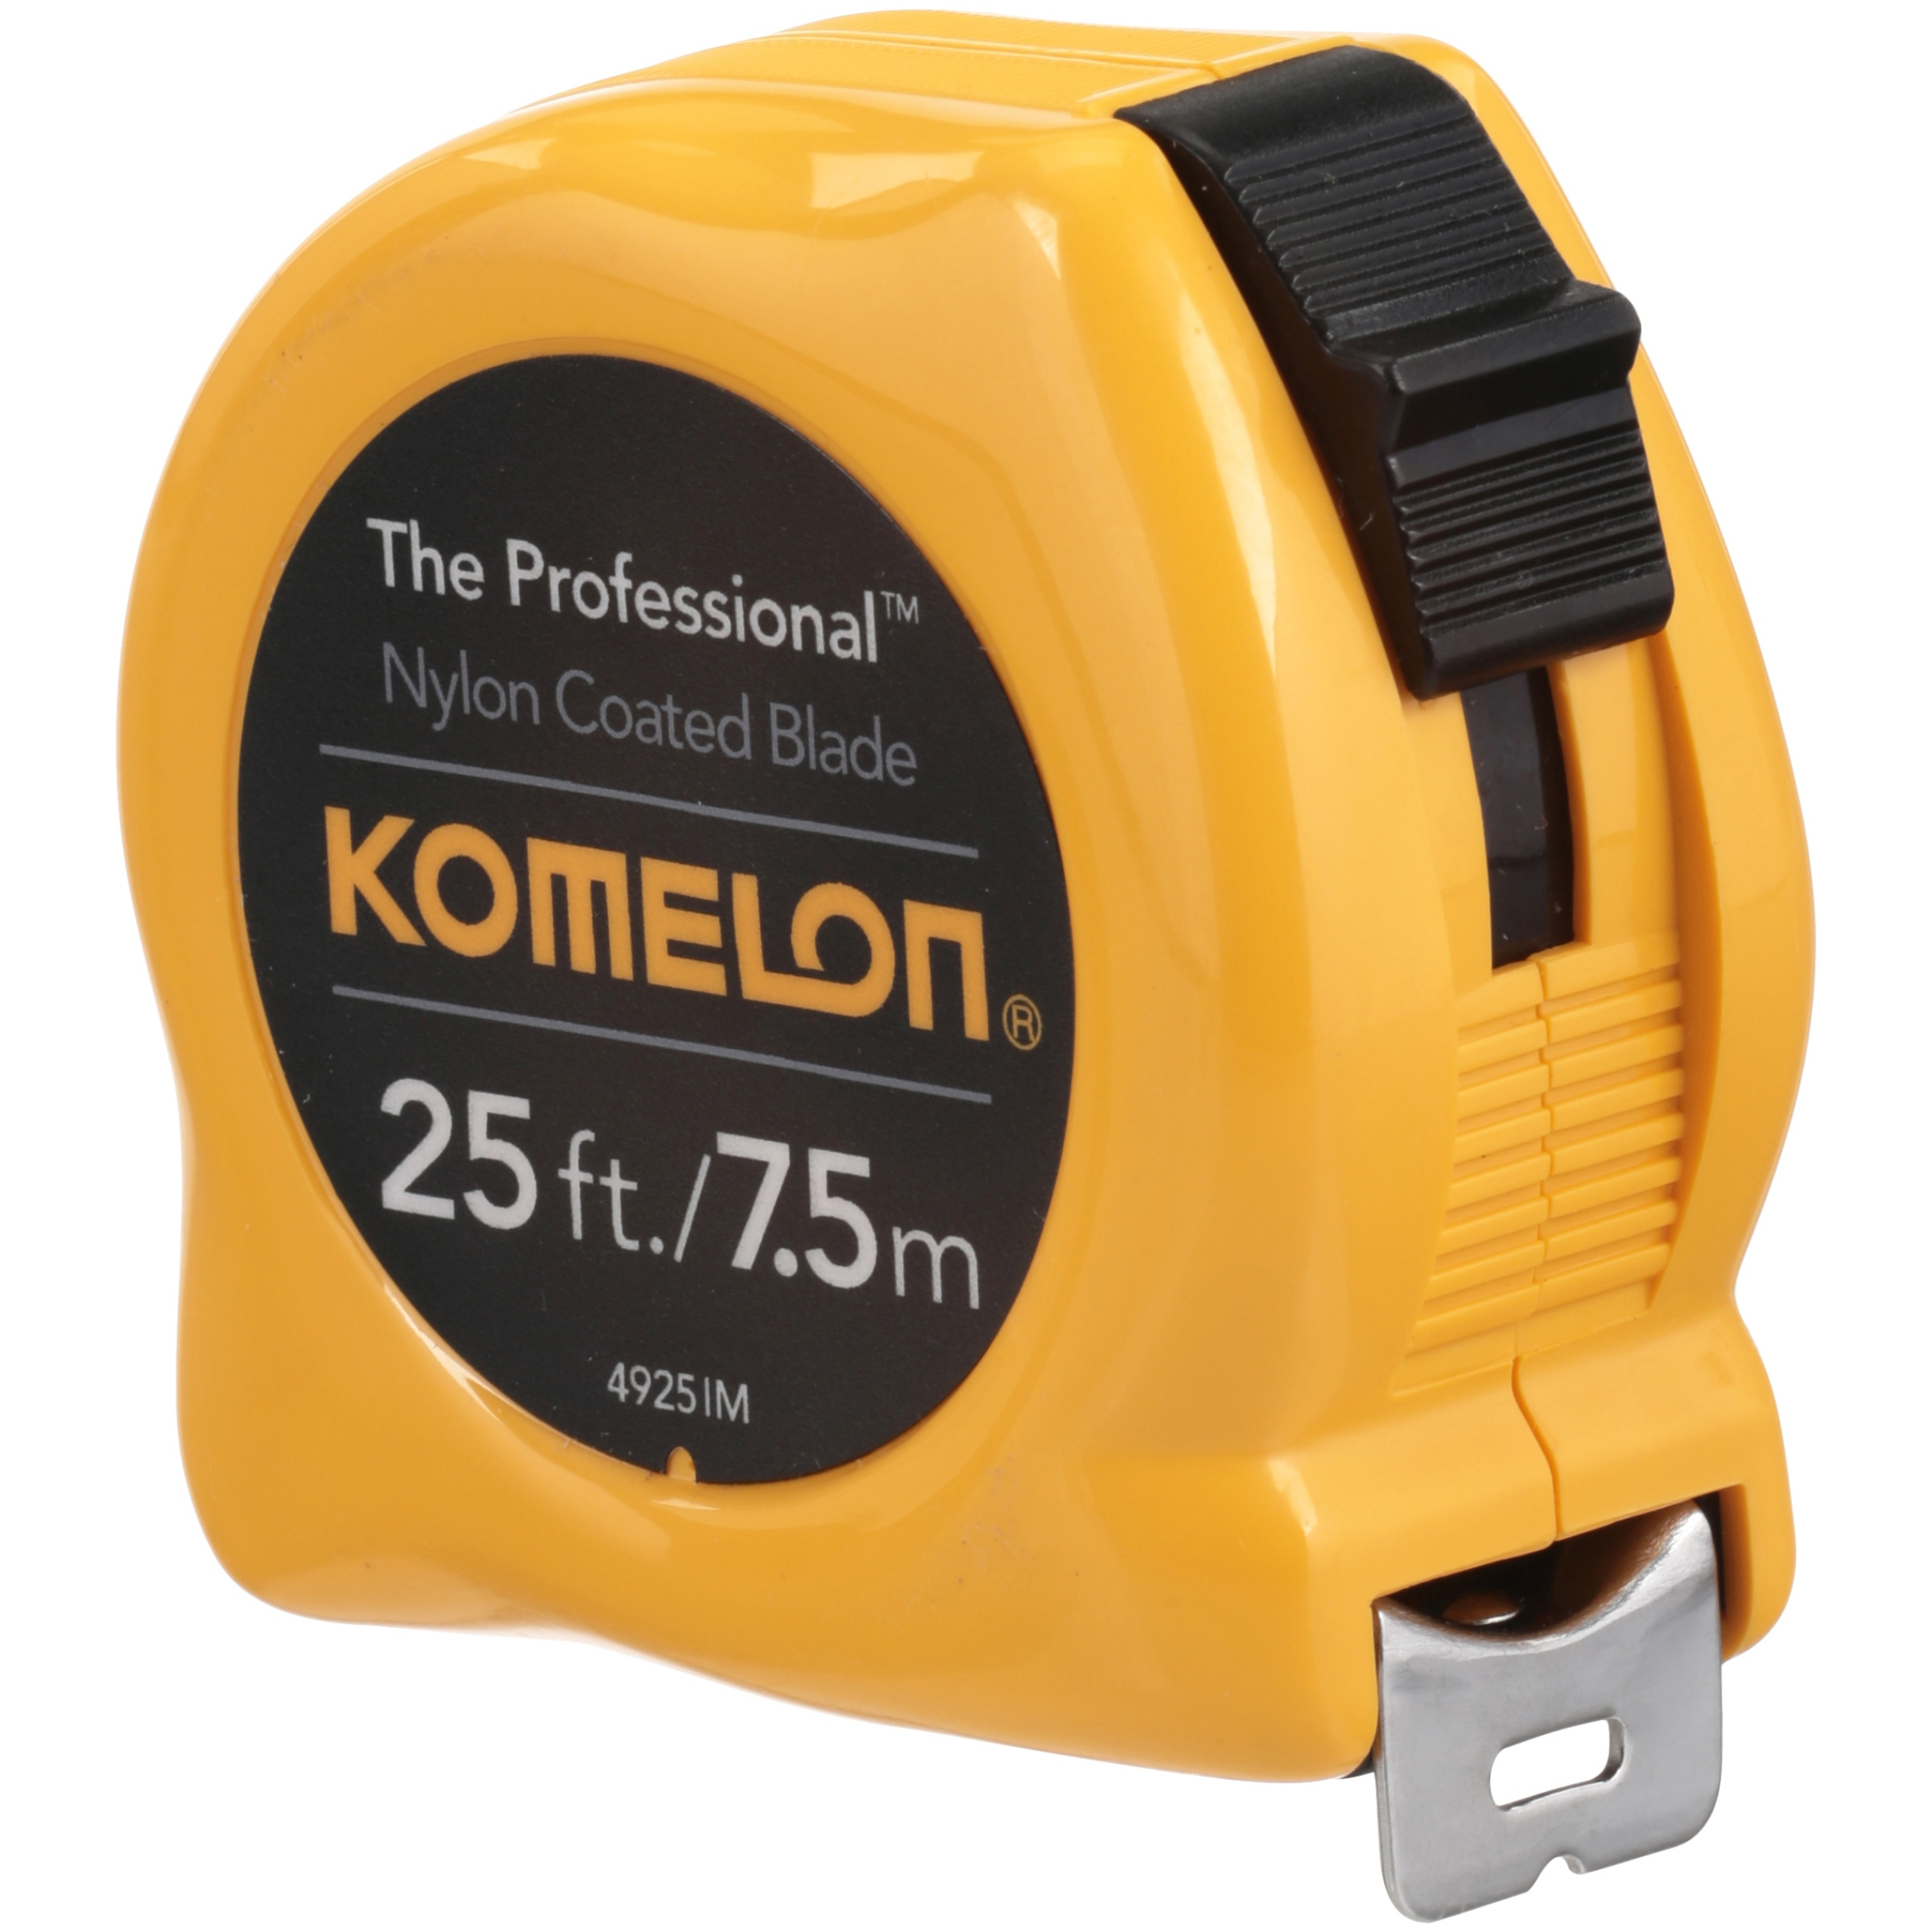 Komelon® The Professional 25 ft. Tape Measure